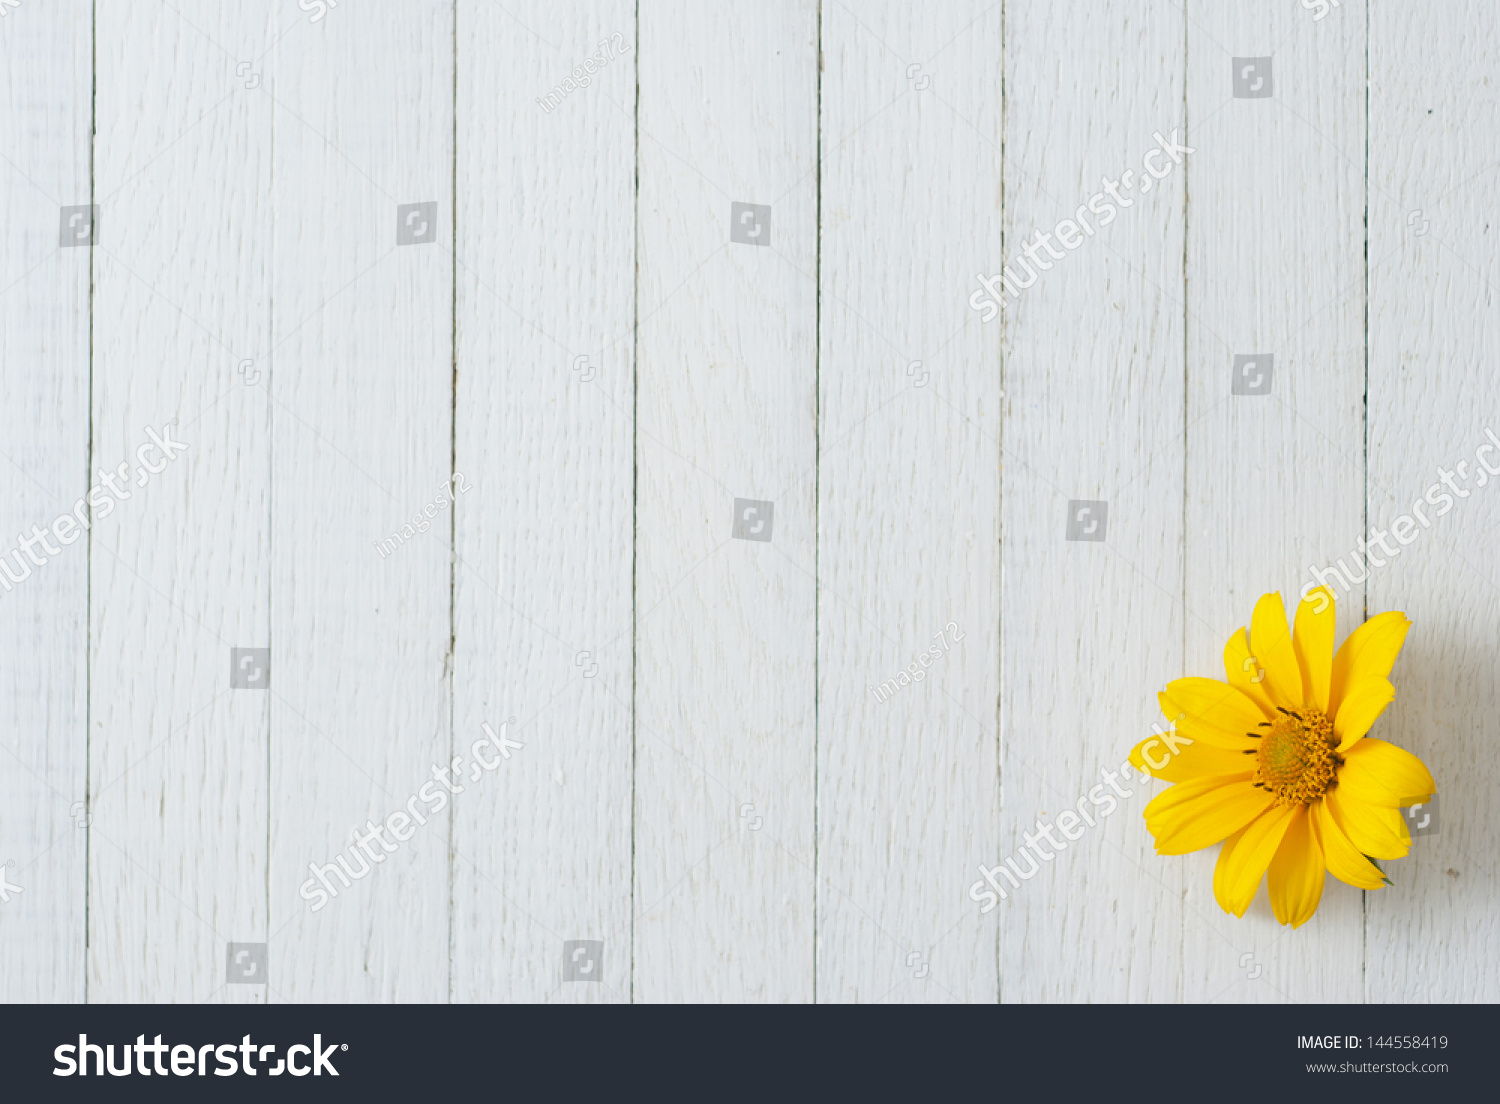 Wood table background hd - Summer Flower On Wooden Table Background